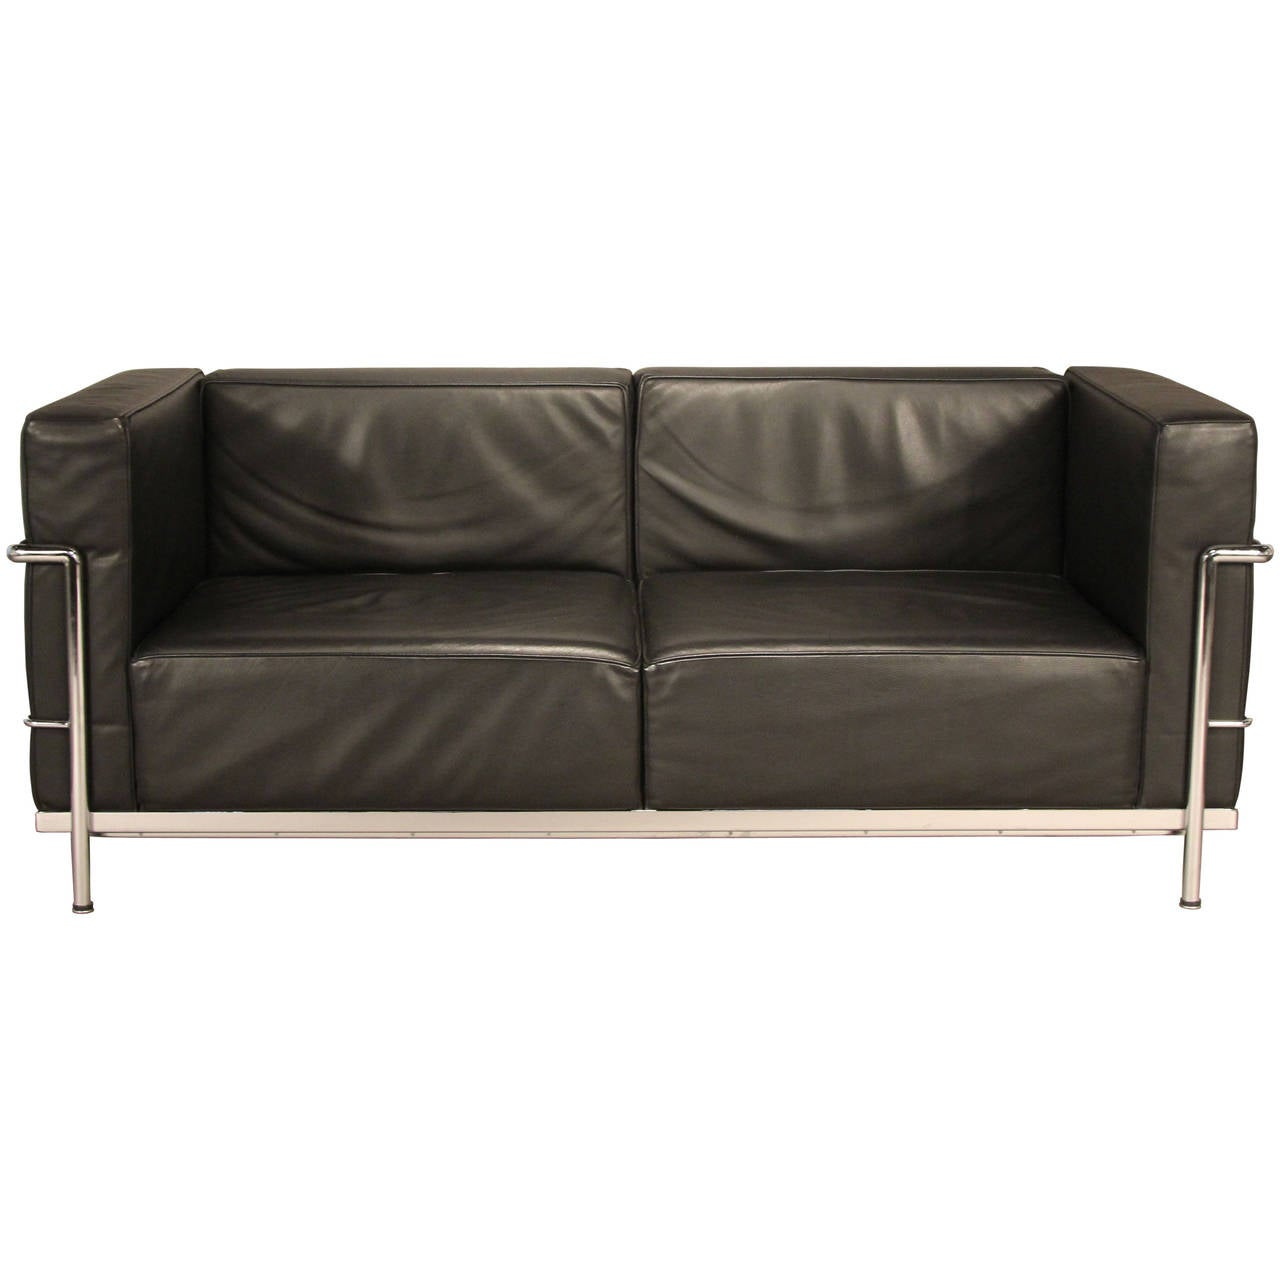 le corbusier lc3 leather and chrome loveseat sofa at 1stdibs. Black Bedroom Furniture Sets. Home Design Ideas